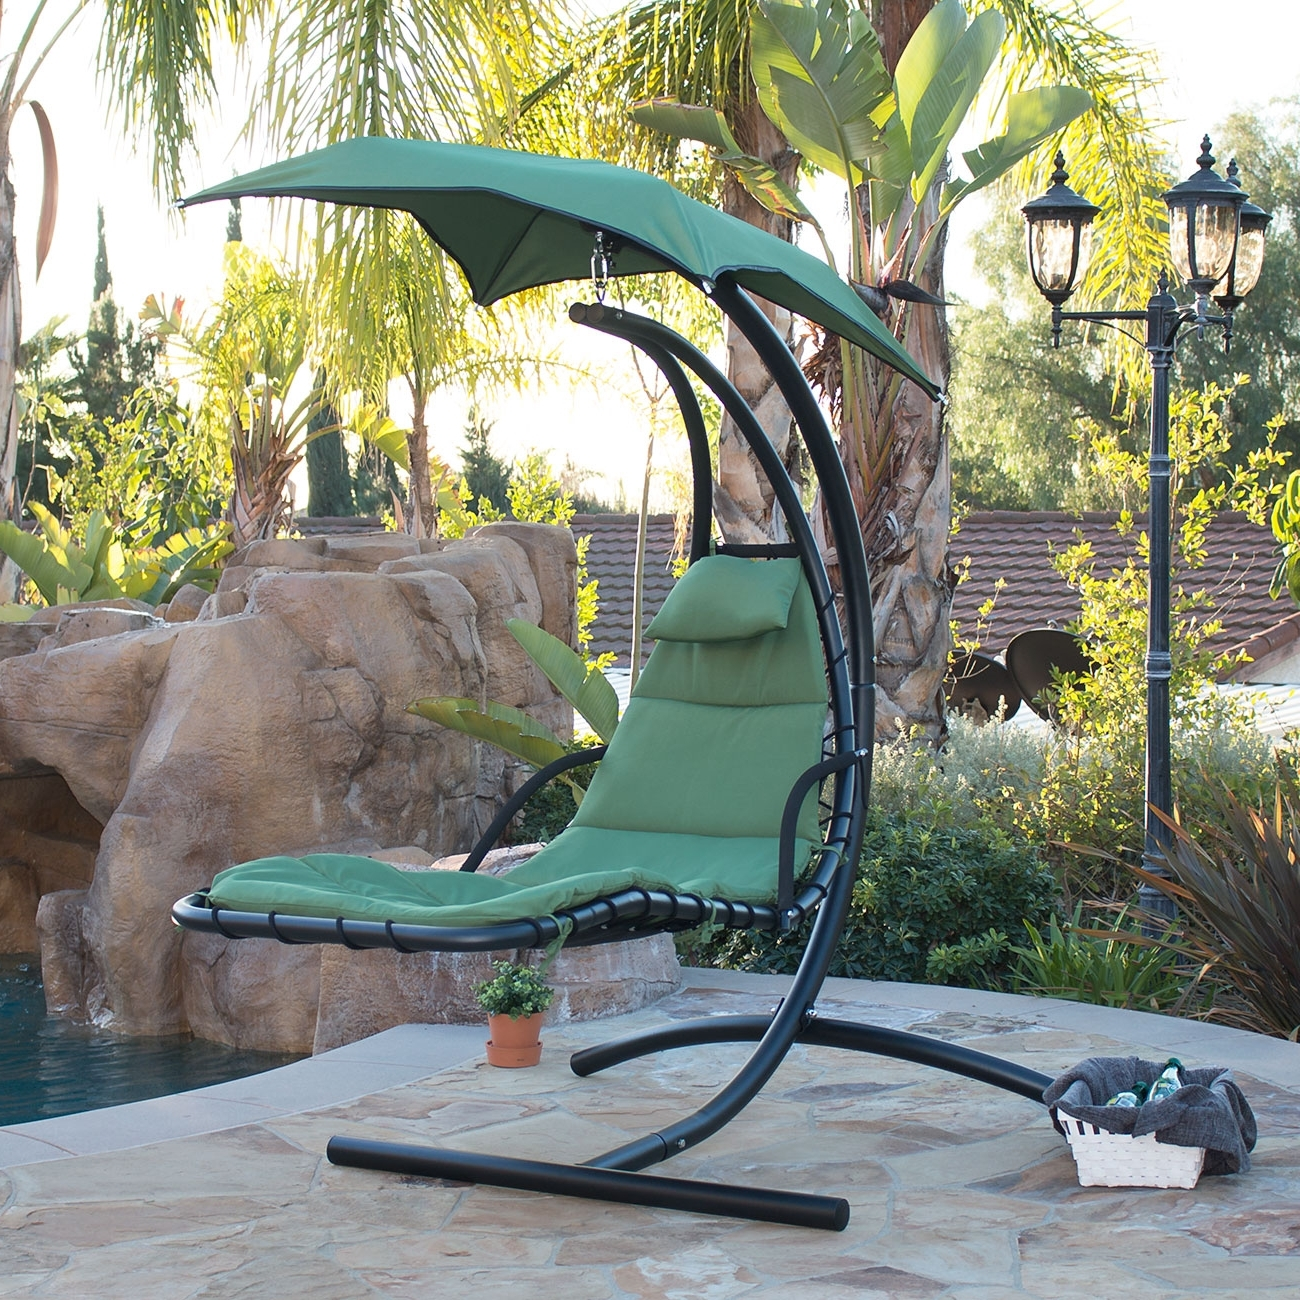 Hanging Chaise Lounge Chair Hammock Swing Canopy Glider Outdoor For 2017 Chaise Lounge Swing Chairs (View 6 of 15)